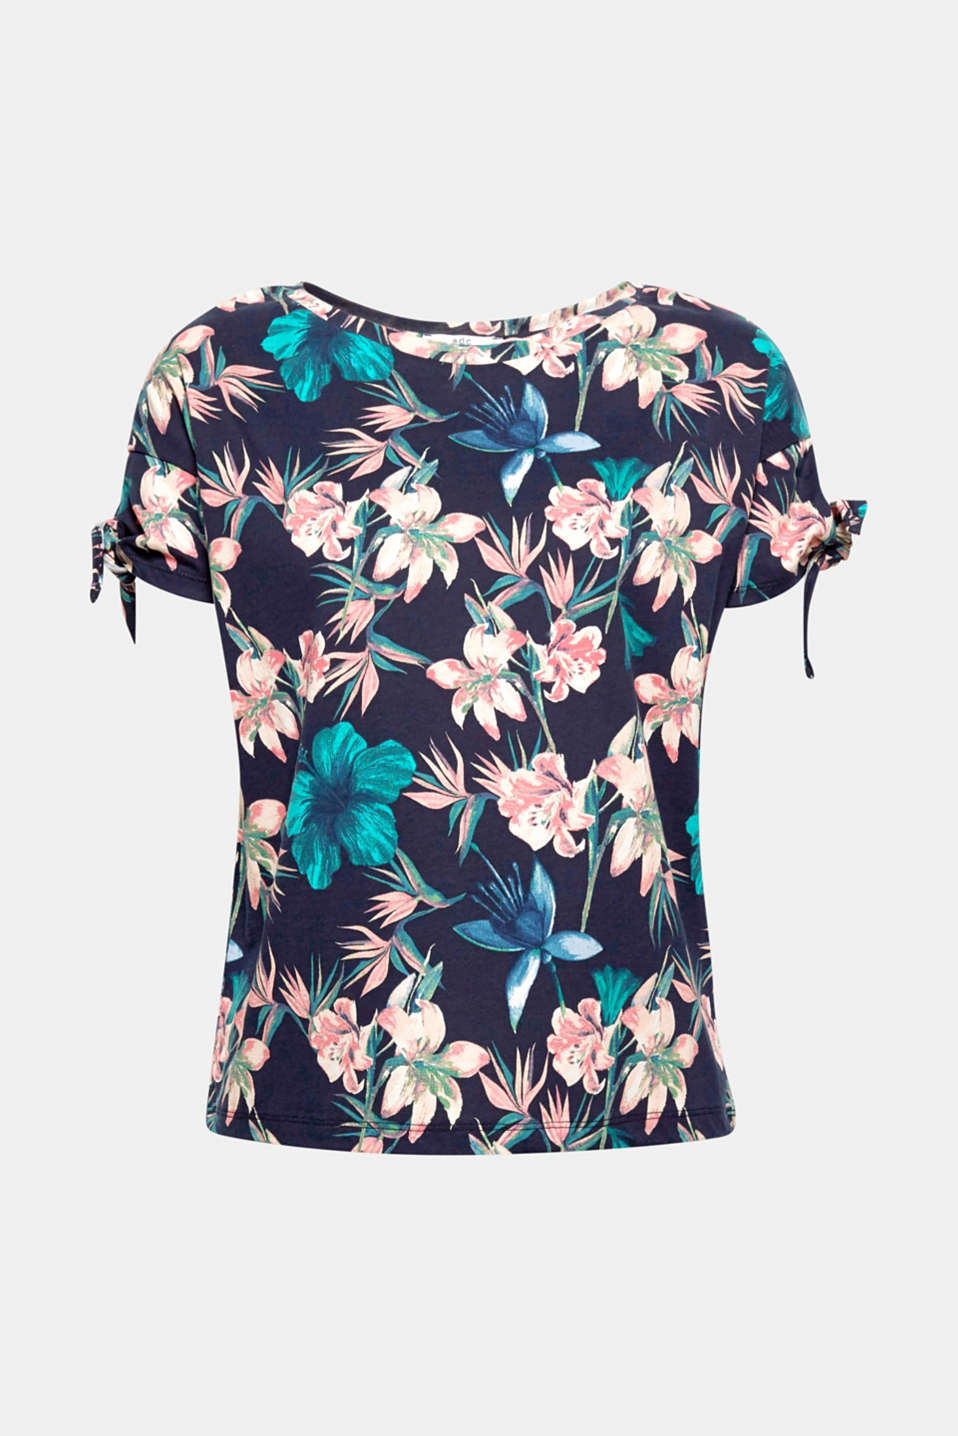 With lacing effects on both sleeves: the leaf print and the wide design make this T-shirt super summery!